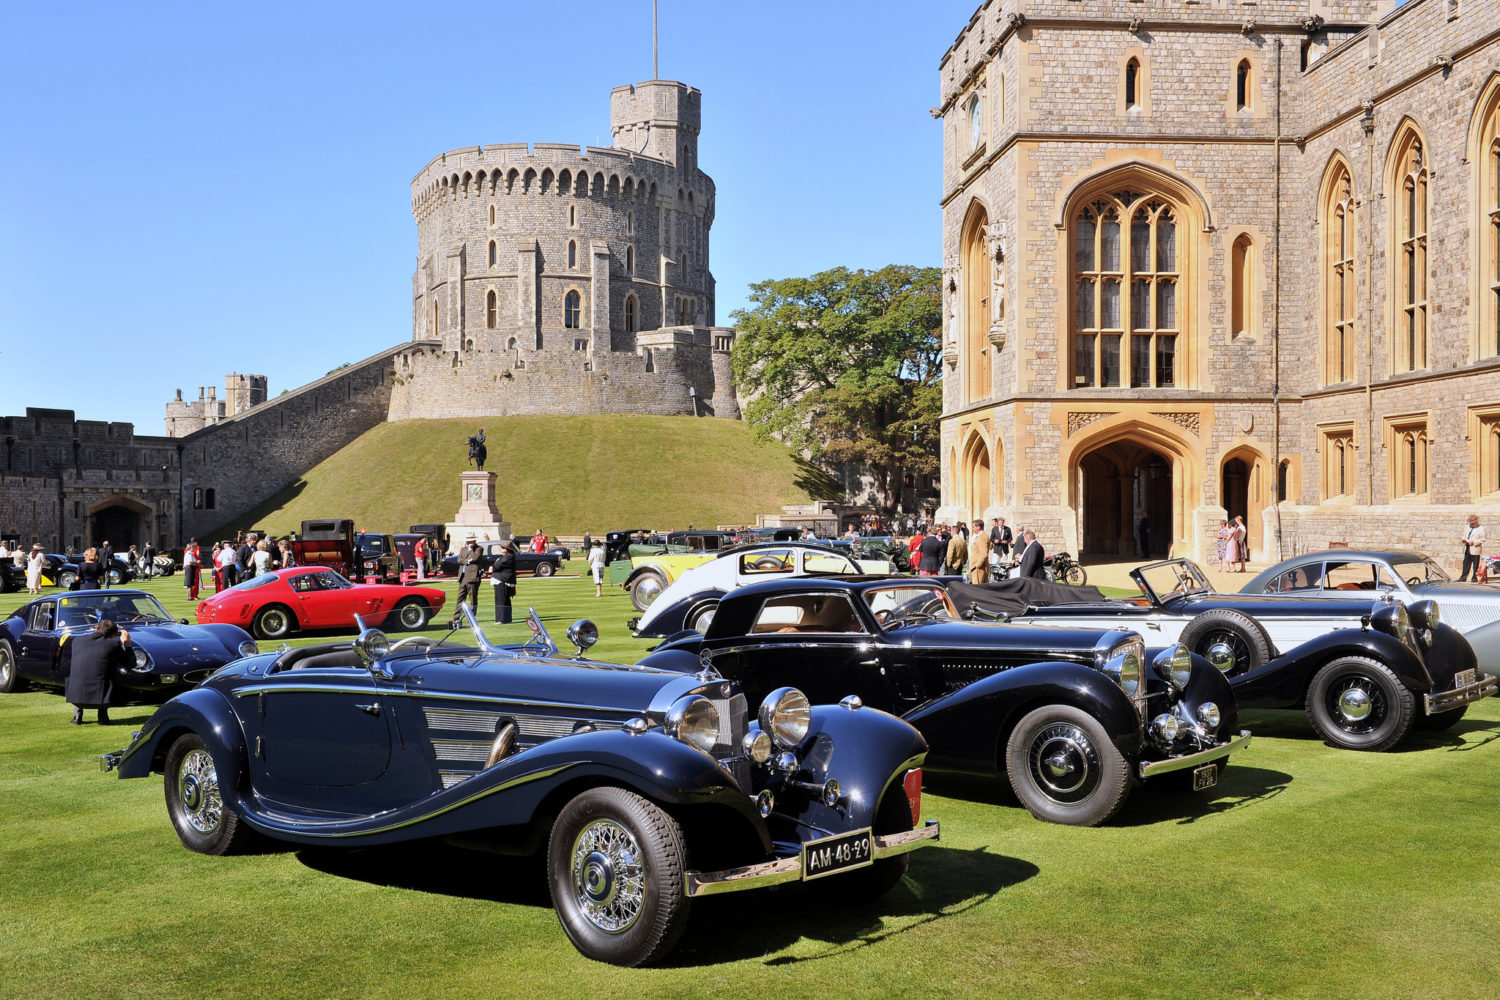 CONCOURS OF ELEGANCE 2016: BIGGER AND BETTER THAN EVER